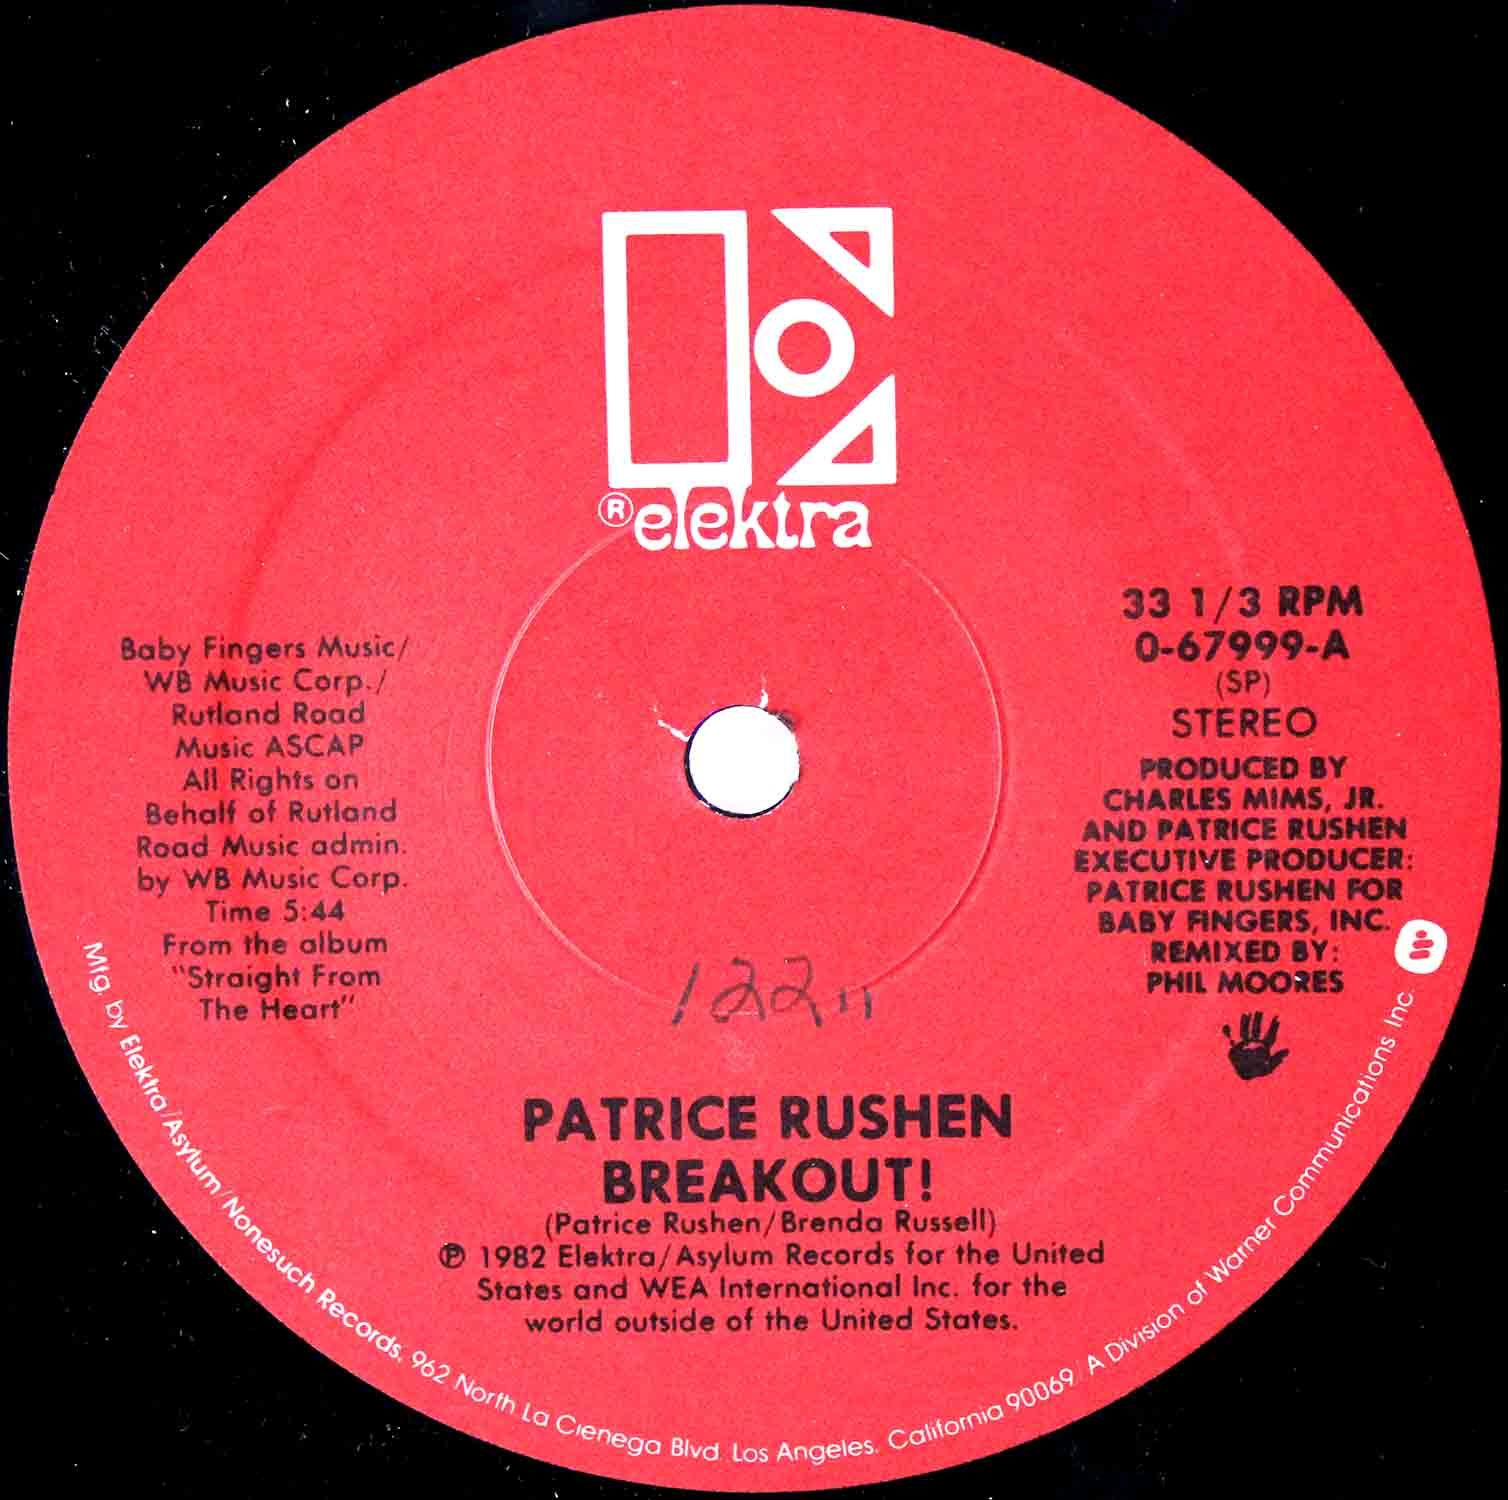 Patrice Rushen – Number One 04